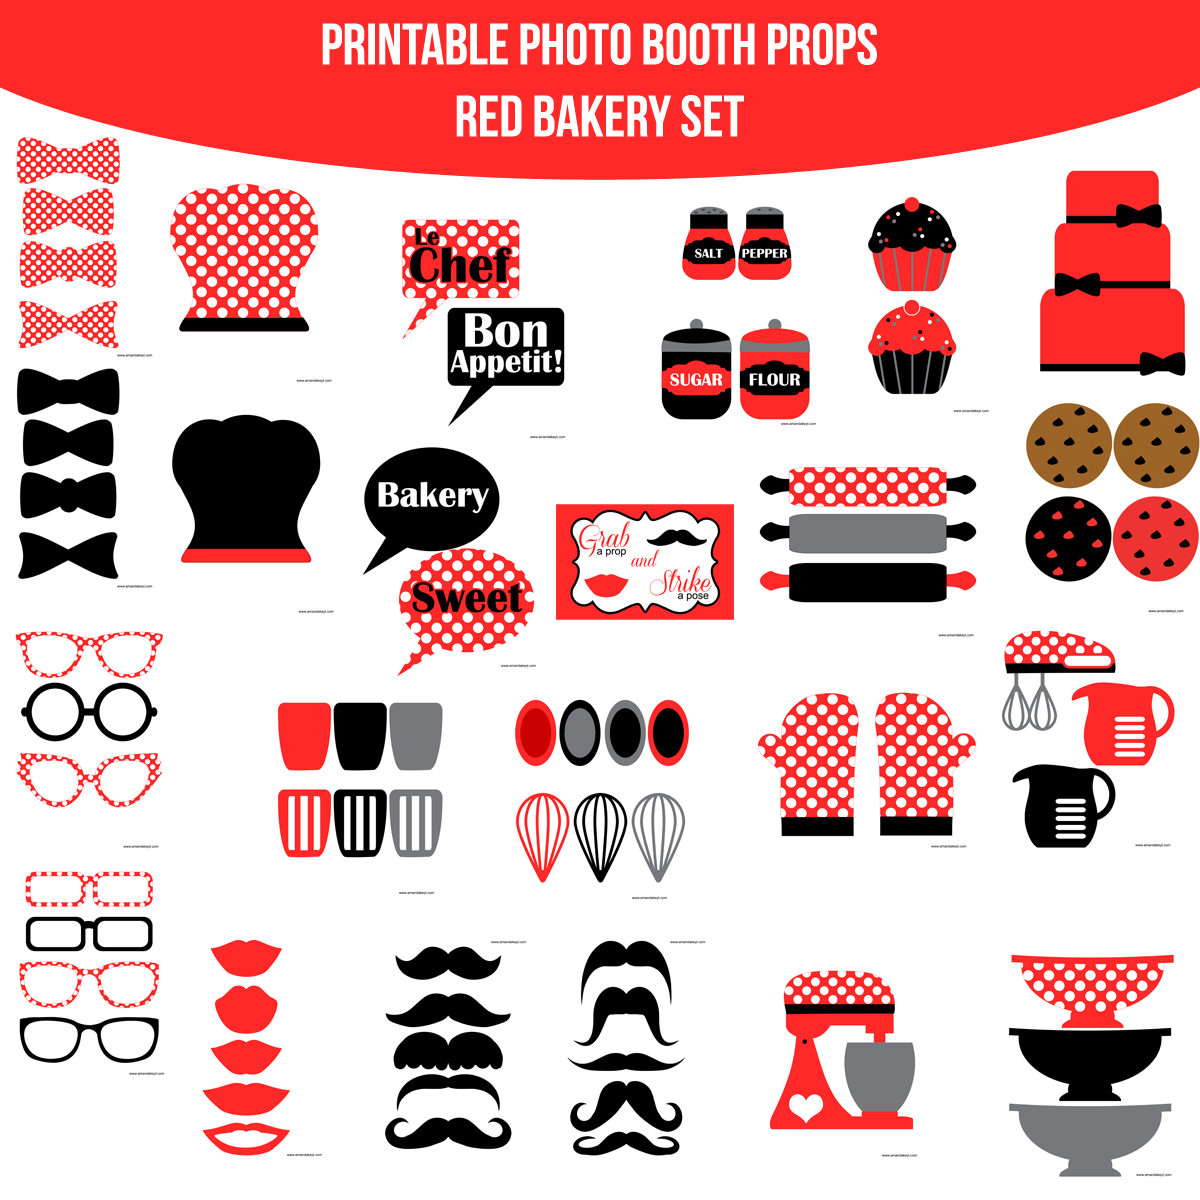 See the Set - To View The Whole Bakery Red Printable Photo Booth Prop Set Click Here